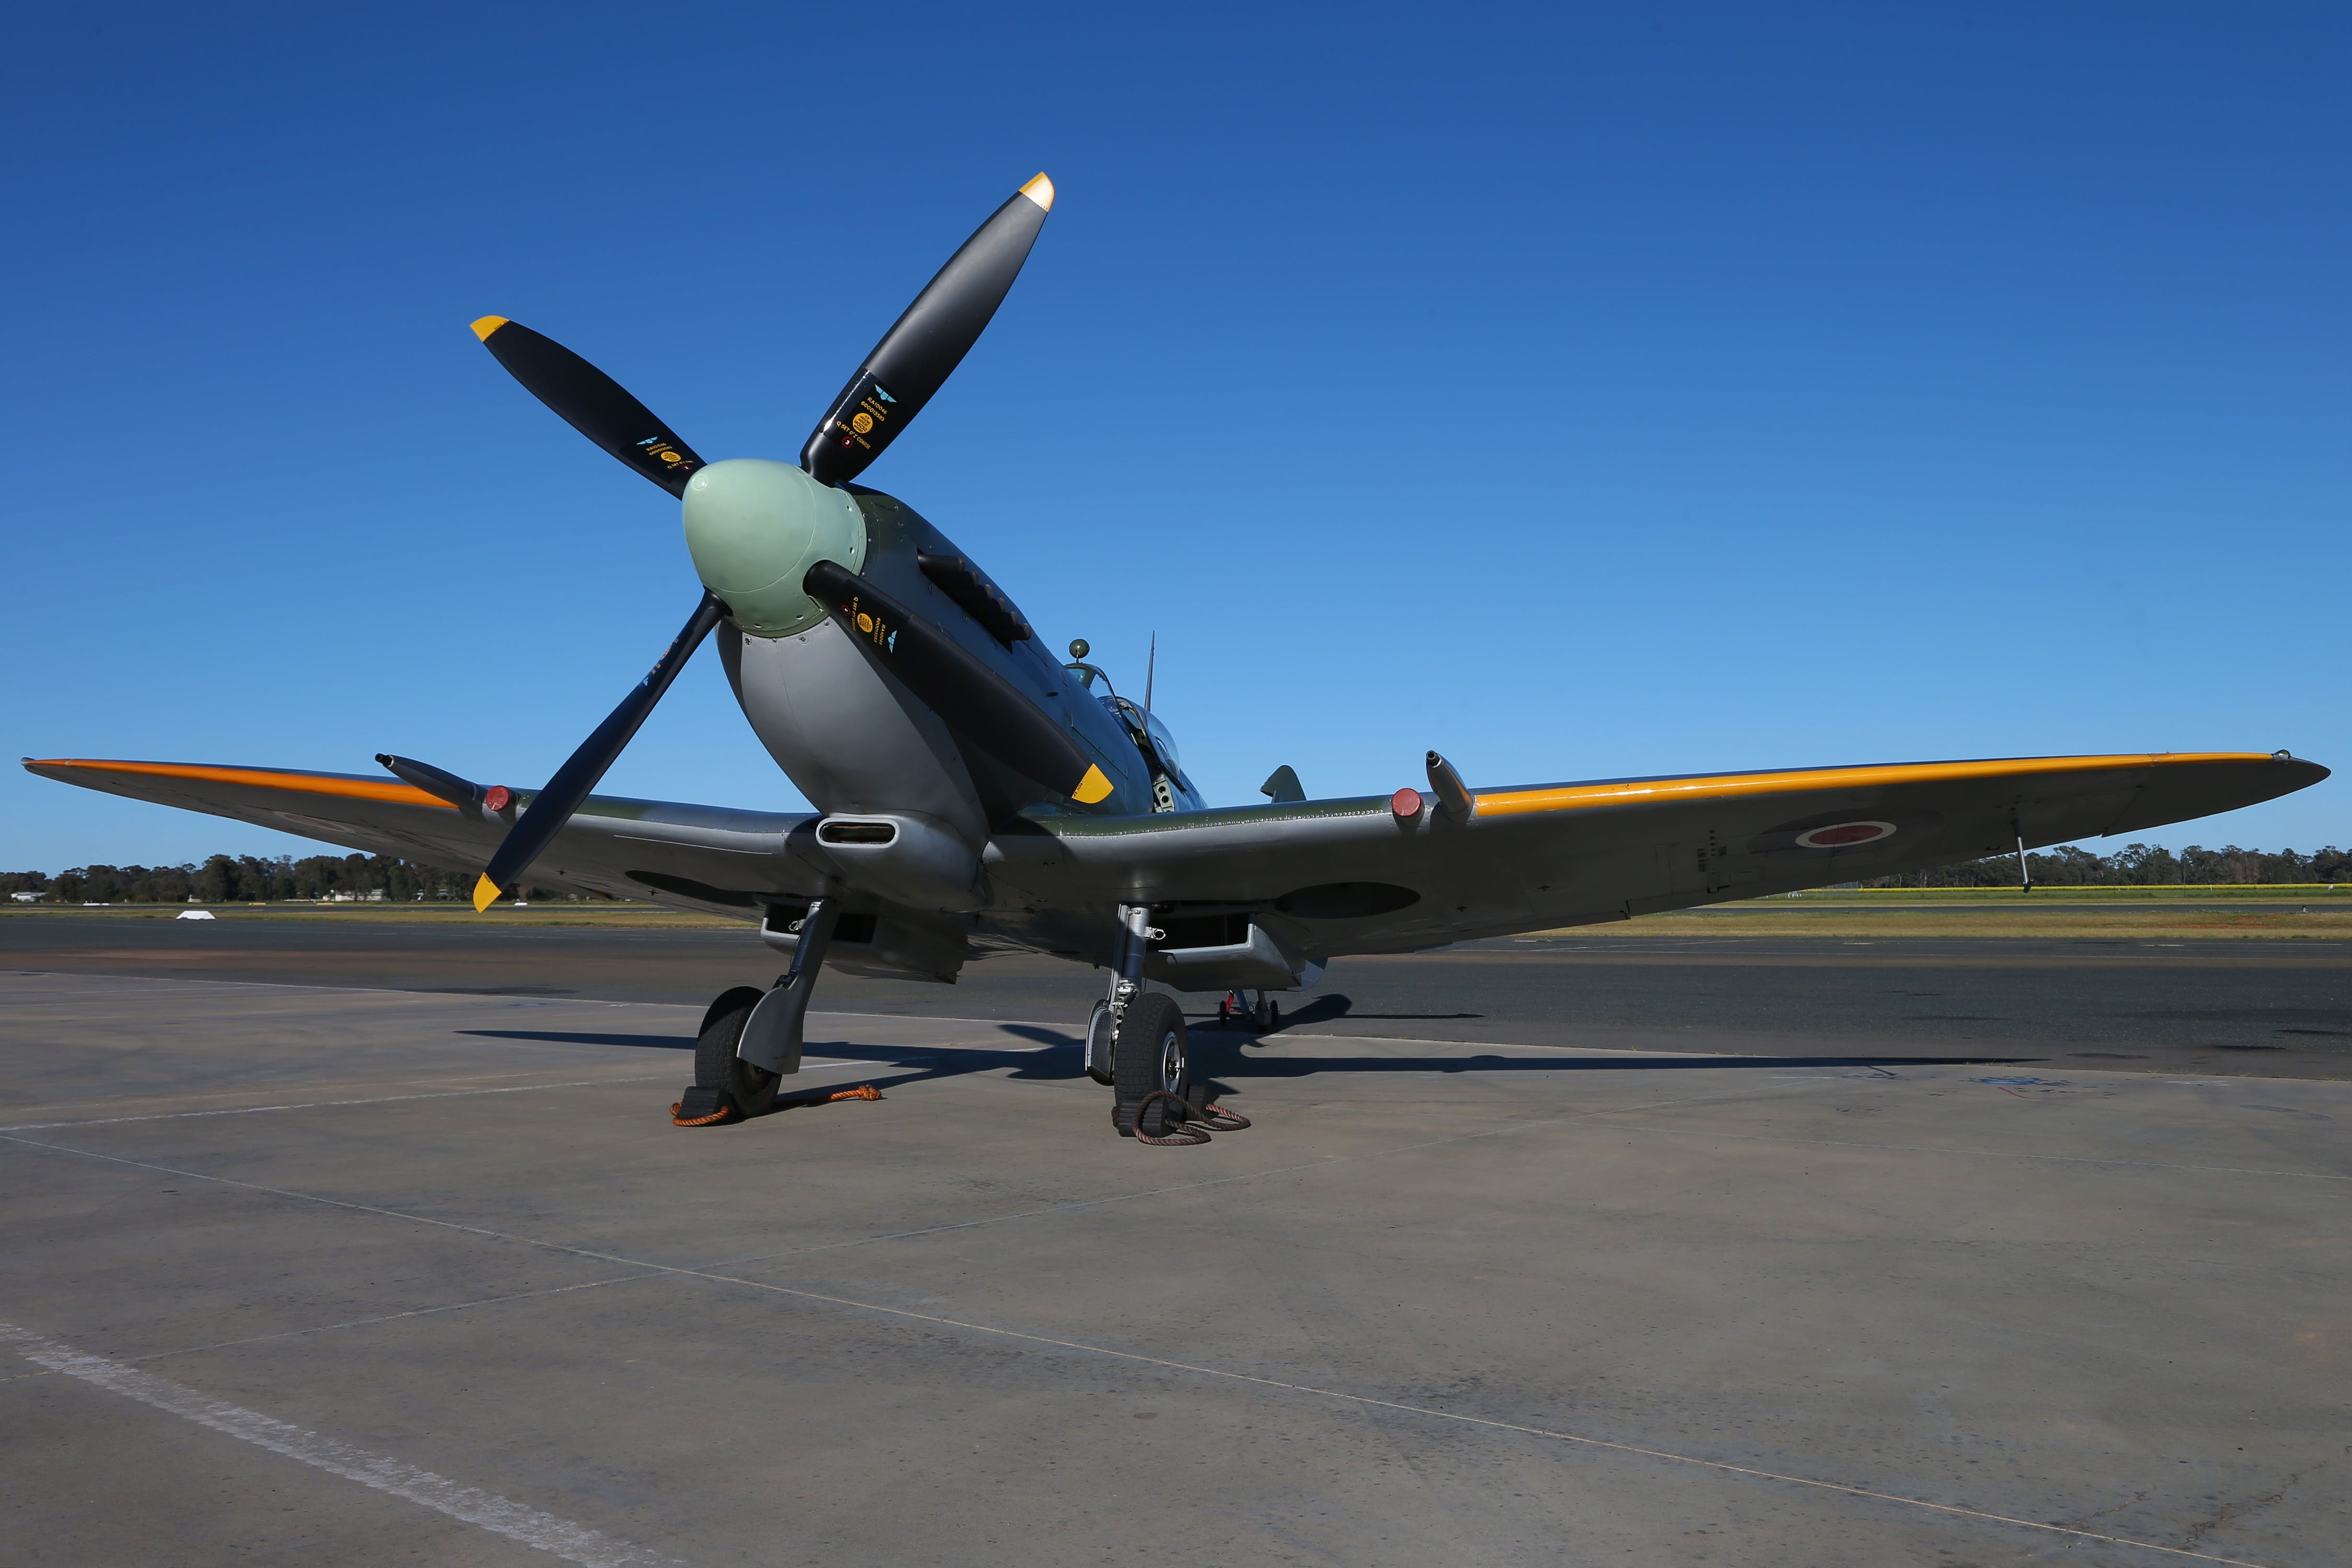 October Weekend Aircraft Showcase - Accommodation in Surfers Paradise